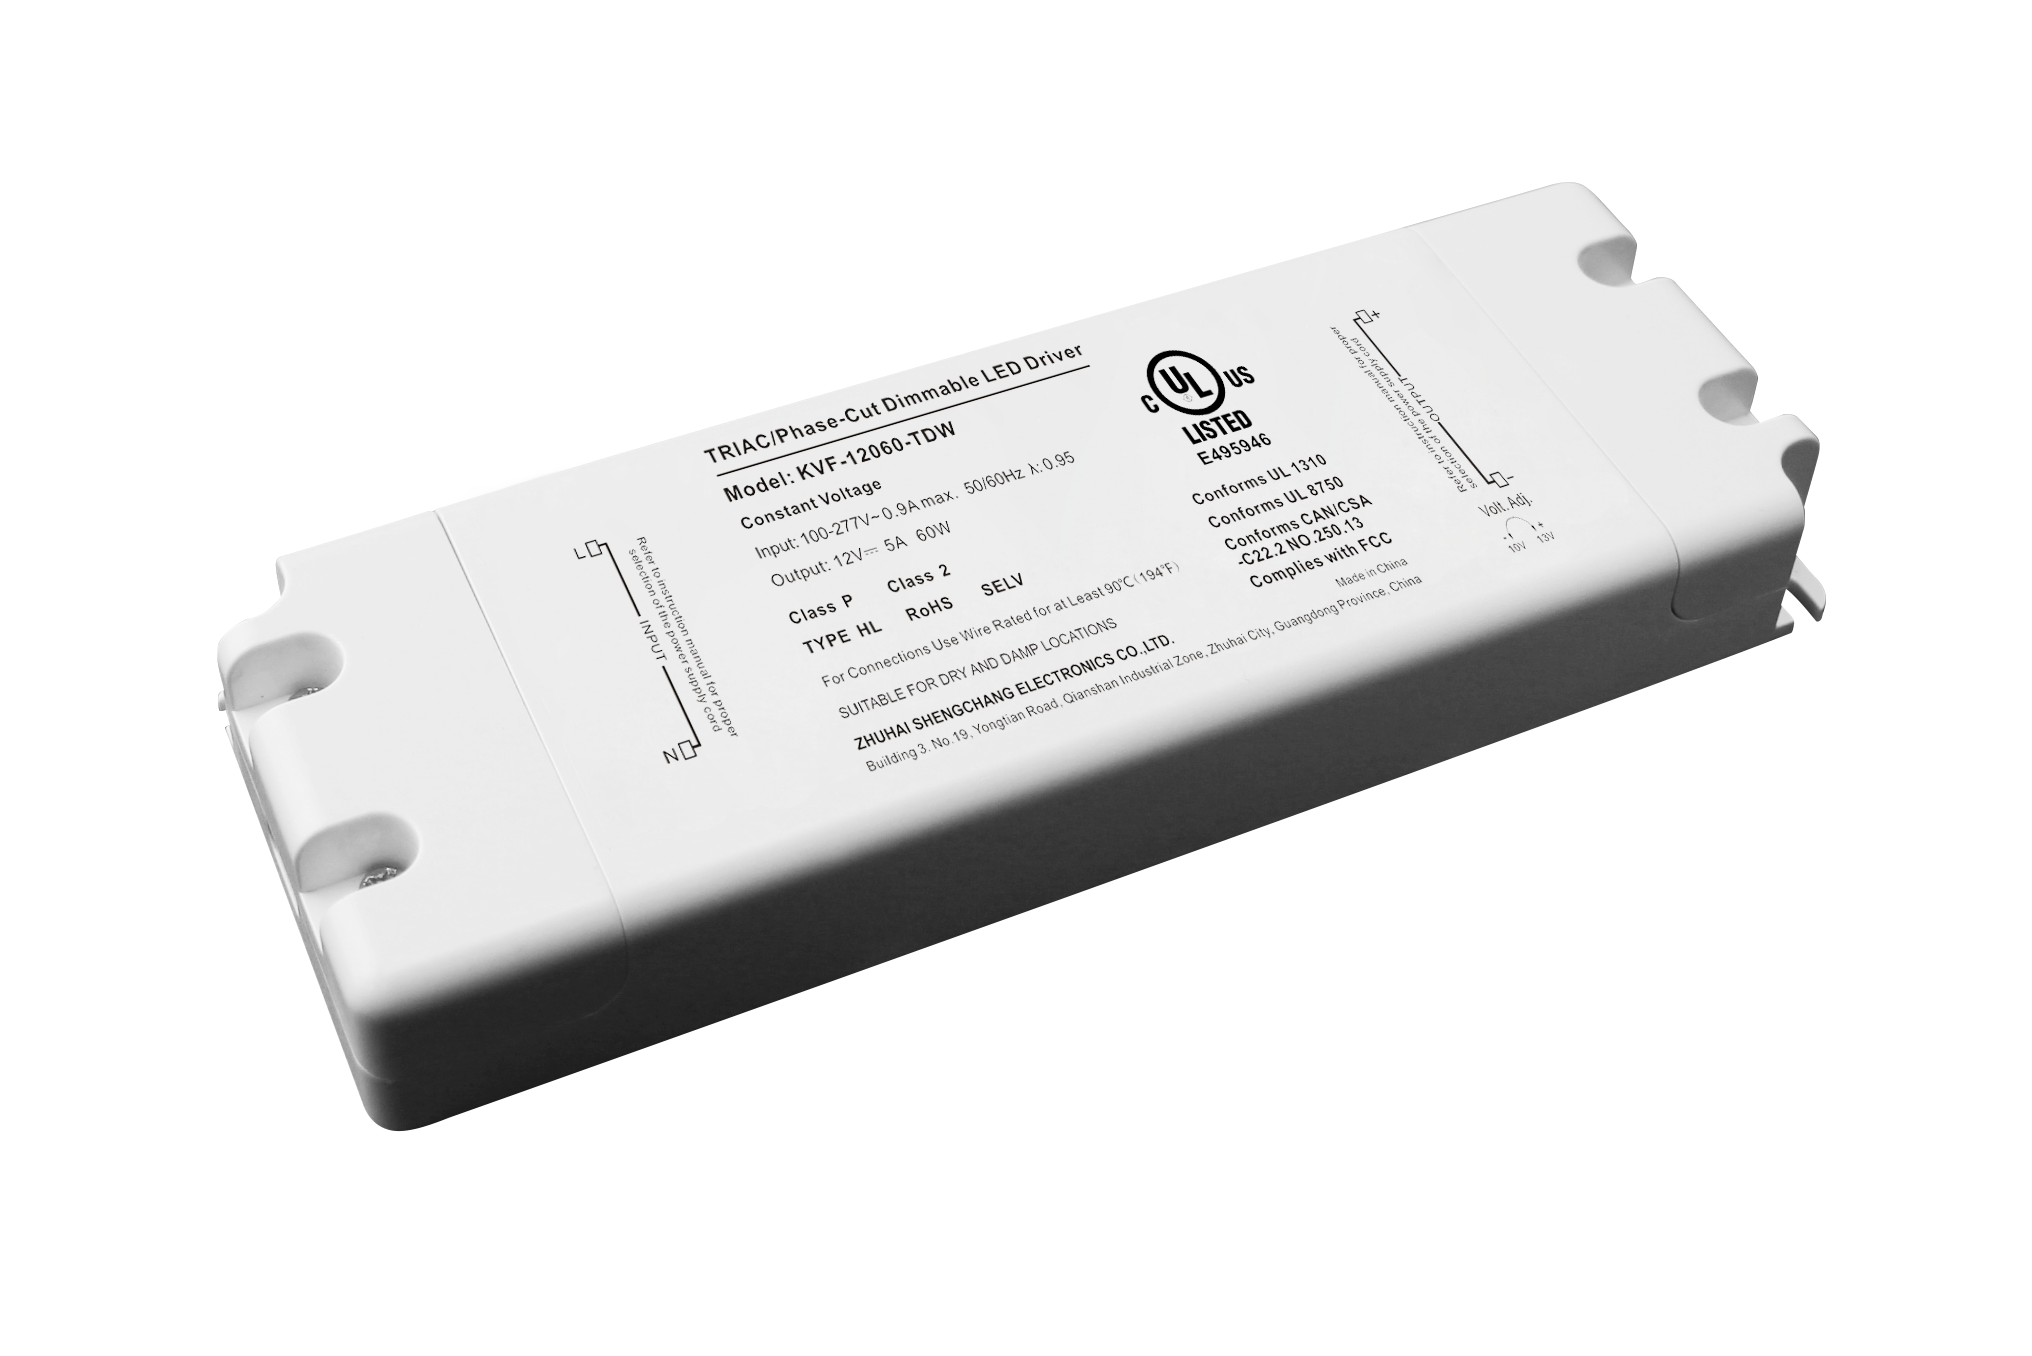 120VAC KVF Series 60W Constant Voltage Triac Dimmable LED driver